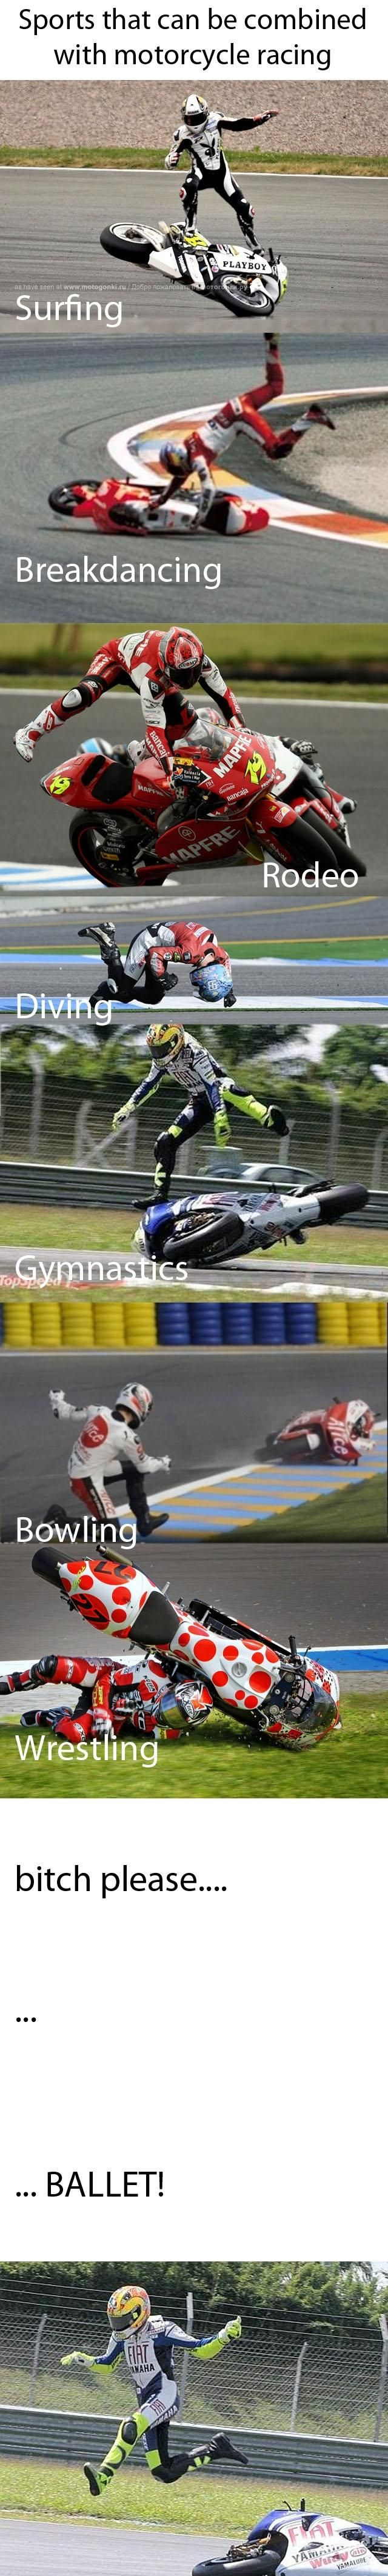 And you said motorsport wasn't a legitimate sport?  funny pics